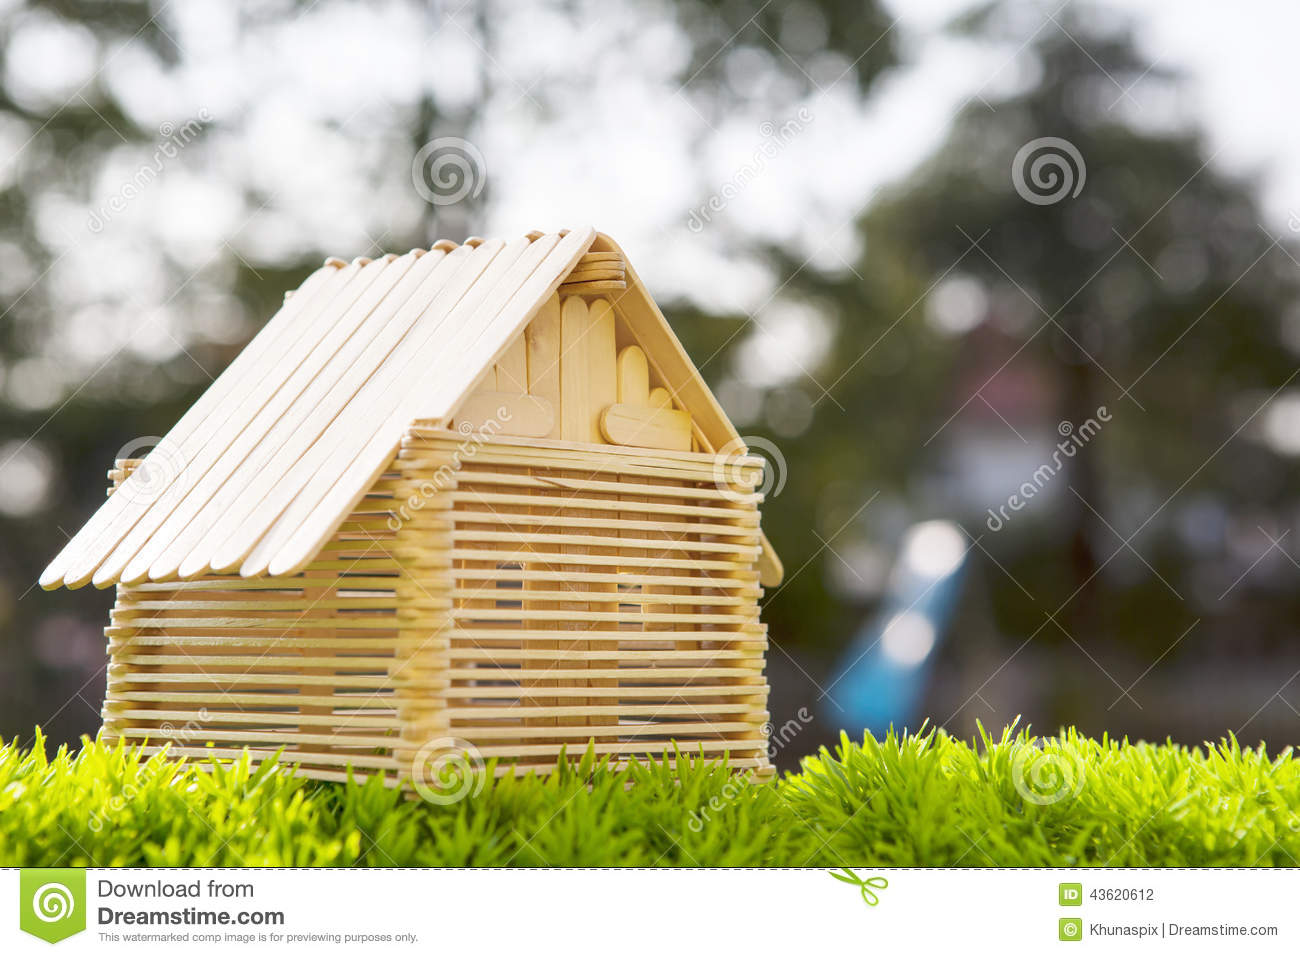 house model make wood stick artificial gra grass field blurry background use home nad housing abstract 43620612